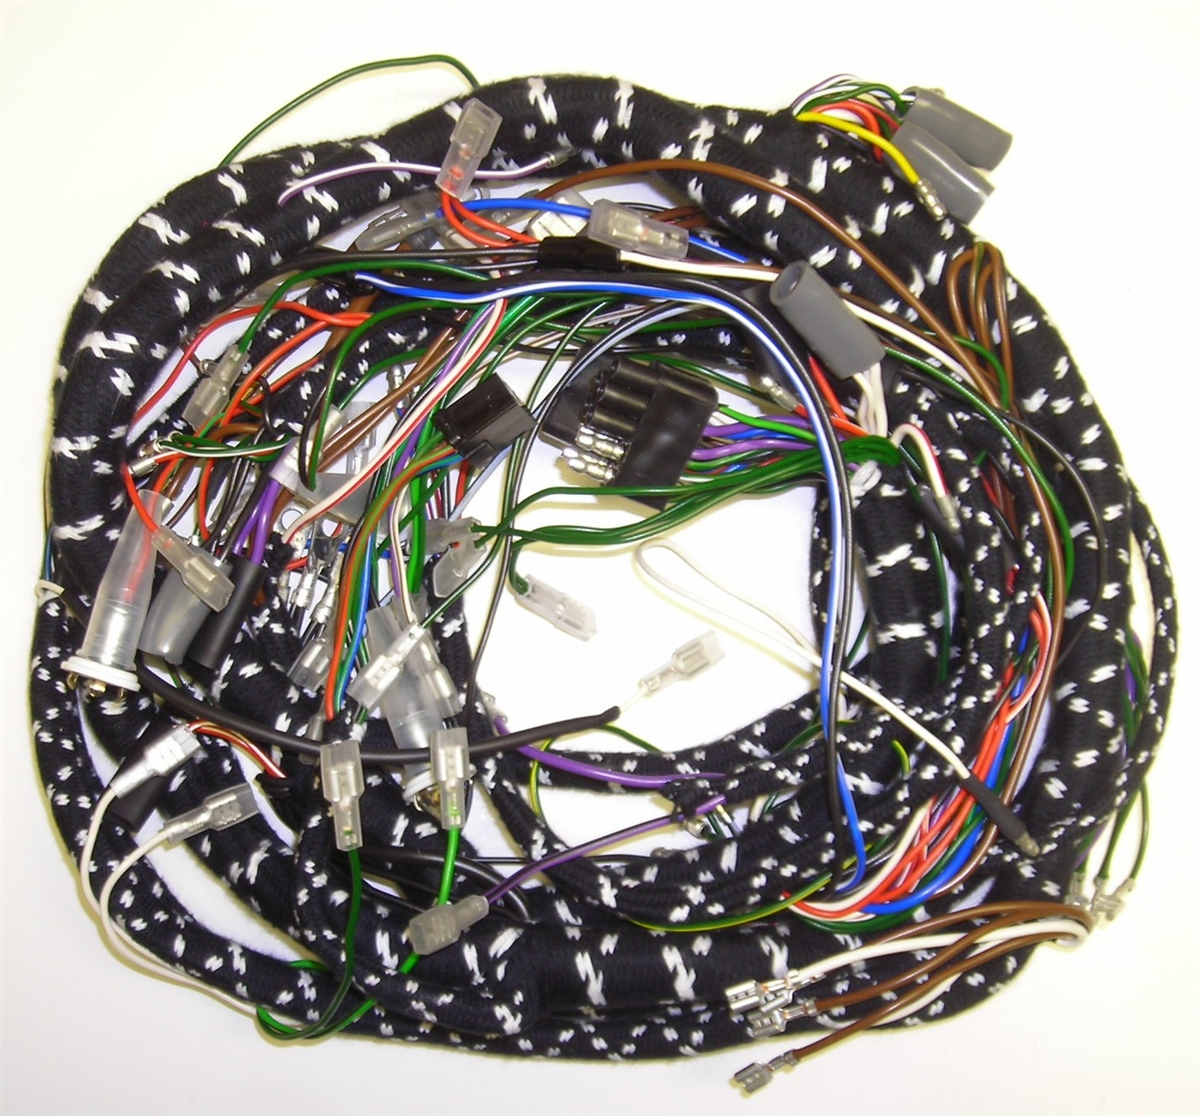 525 2?1355750199 mgb 1967 68 main & dash wiring harness (525) mgb wiring harness at panicattacktreatment.co